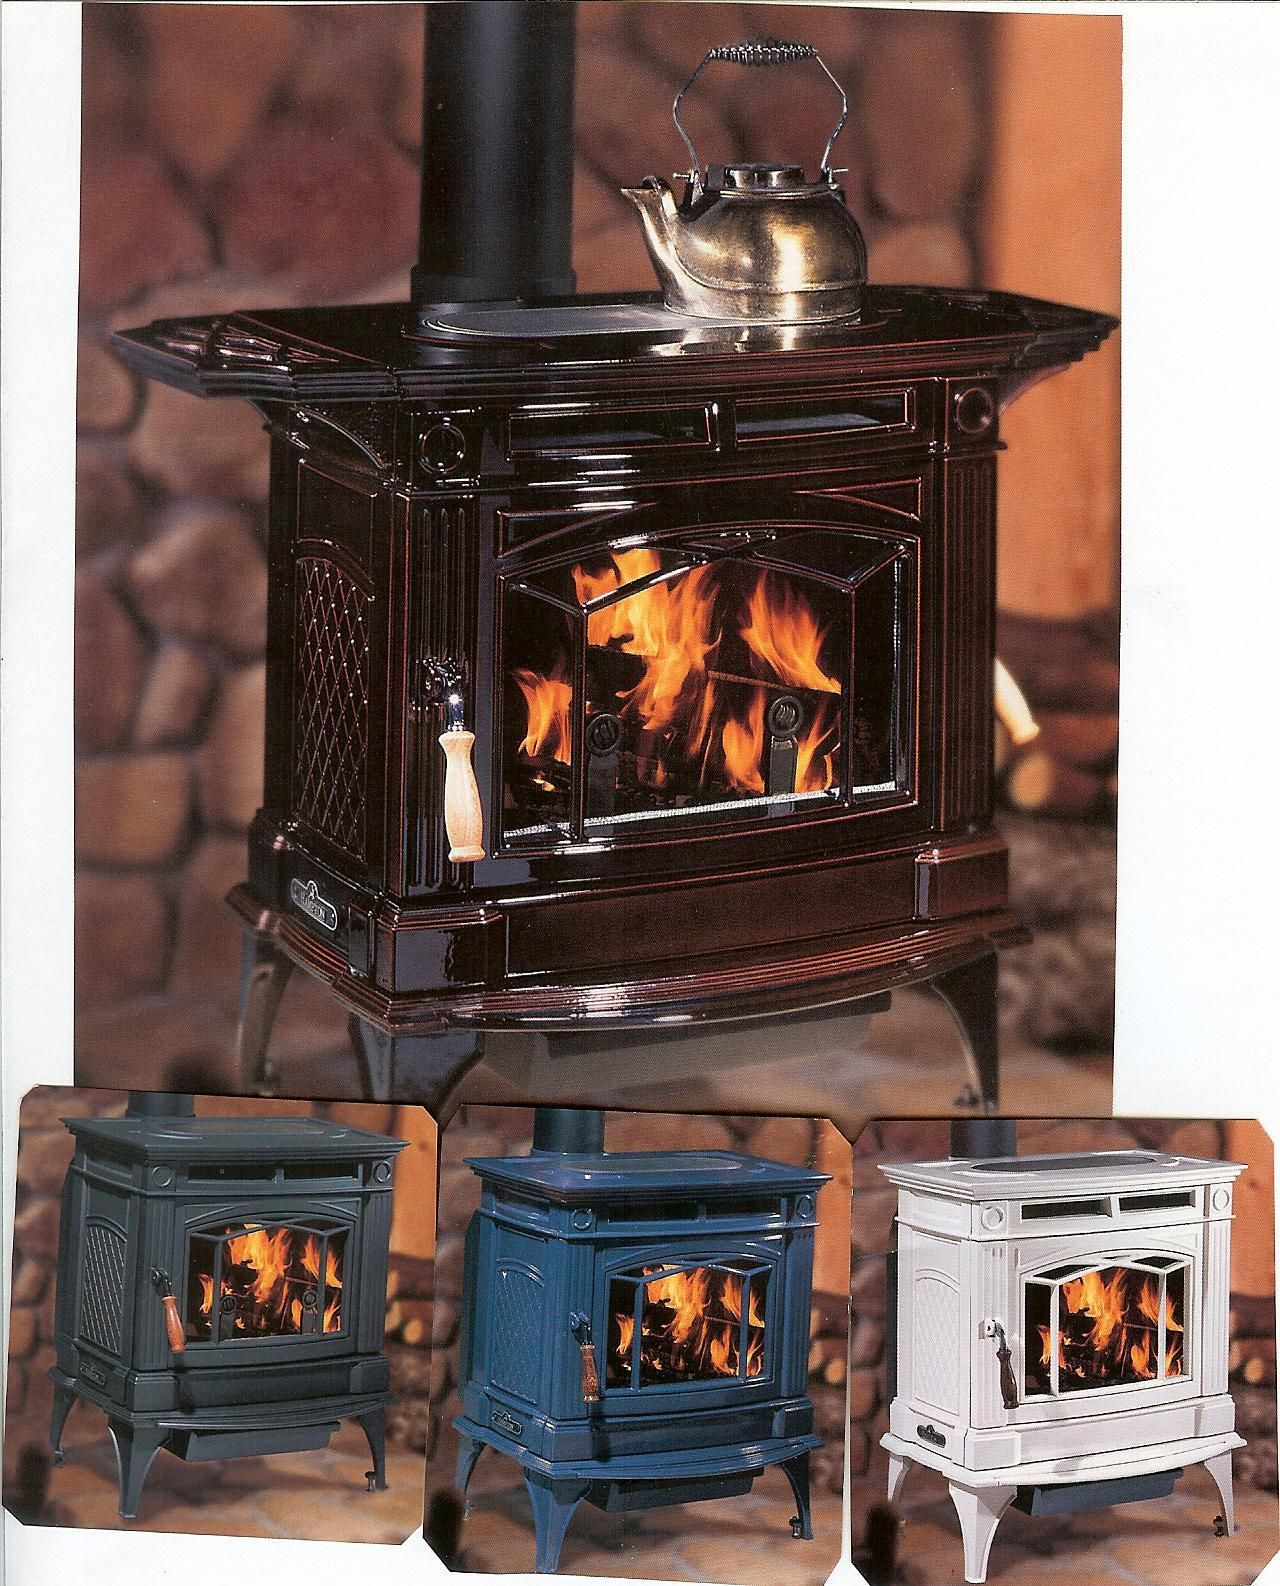 Image Detail For Wood Stoves Wood Stove Wood Pellet Stoves Wood Burning Stove